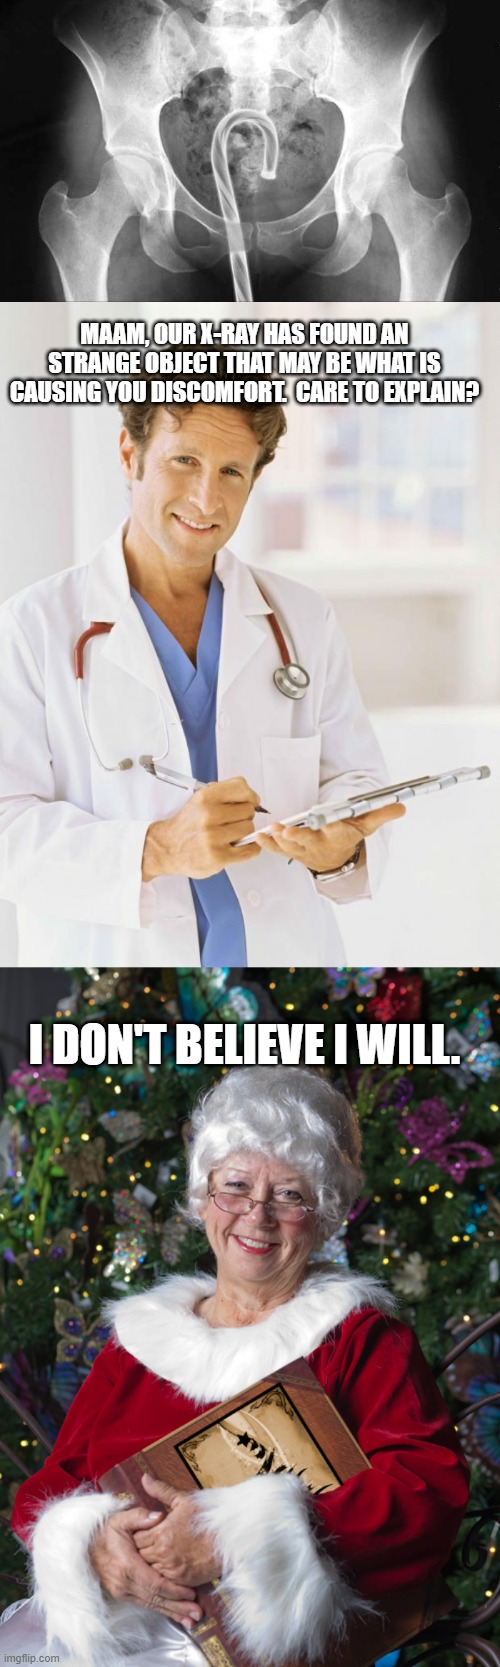 MAAM, OUR X-RAY HAS FOUND AN STRANGE OBJECT THAT MAY BE WHAT IS CAUSING YOU DISCOMFORT.  CARE TO EXPLAIN? I DON'T BELIEVE I WILL. | image tagged in doctor,mrs claus,funny | made w/ Imgflip meme maker